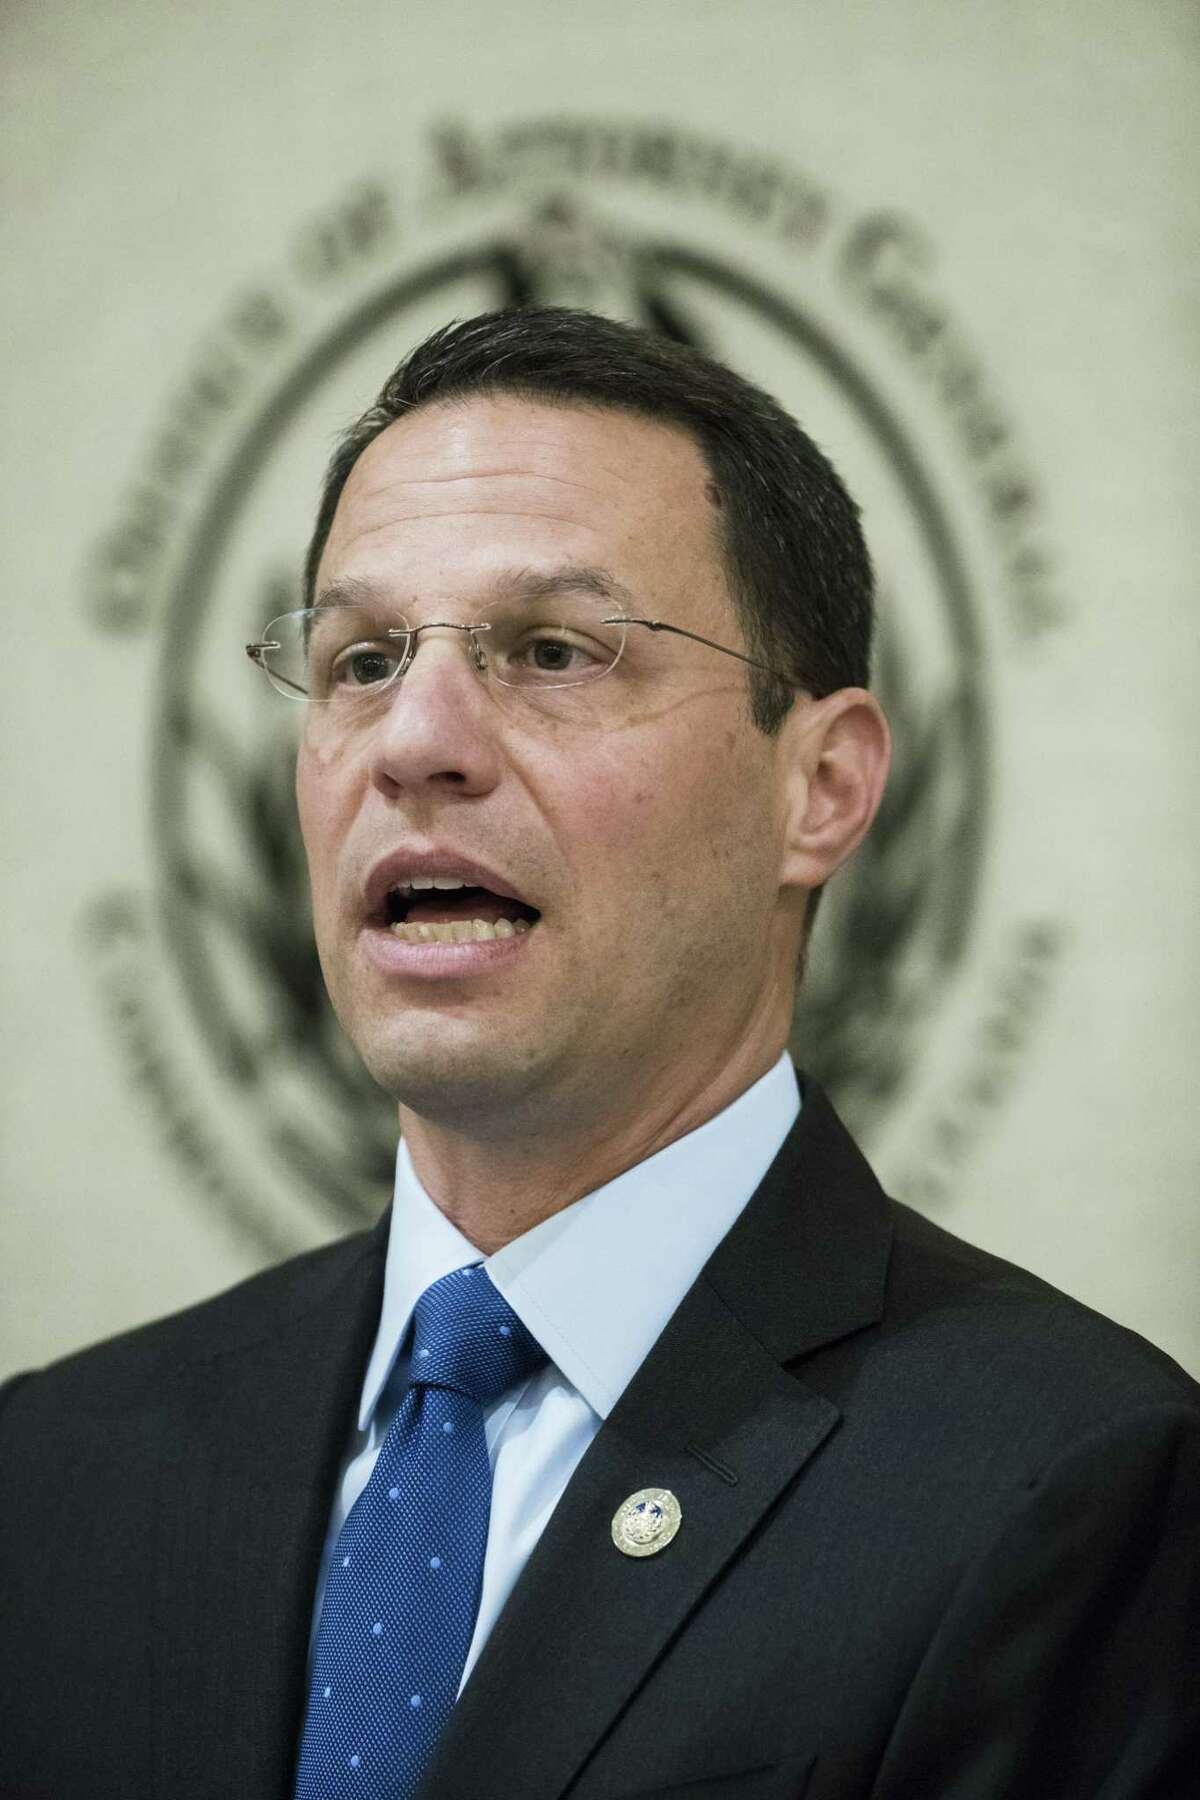 Pennsylvania Attorney General Josh Shapiro speaks during a news conference in Philadelphia, Tuesday, May 14, 2019. Shapiro filed a lawsuit Tuesday against OxyContin maker Purdue Pharma, accusing the company of fueling the company of fueling the state's opioid crisis with deceptive marketing practices.